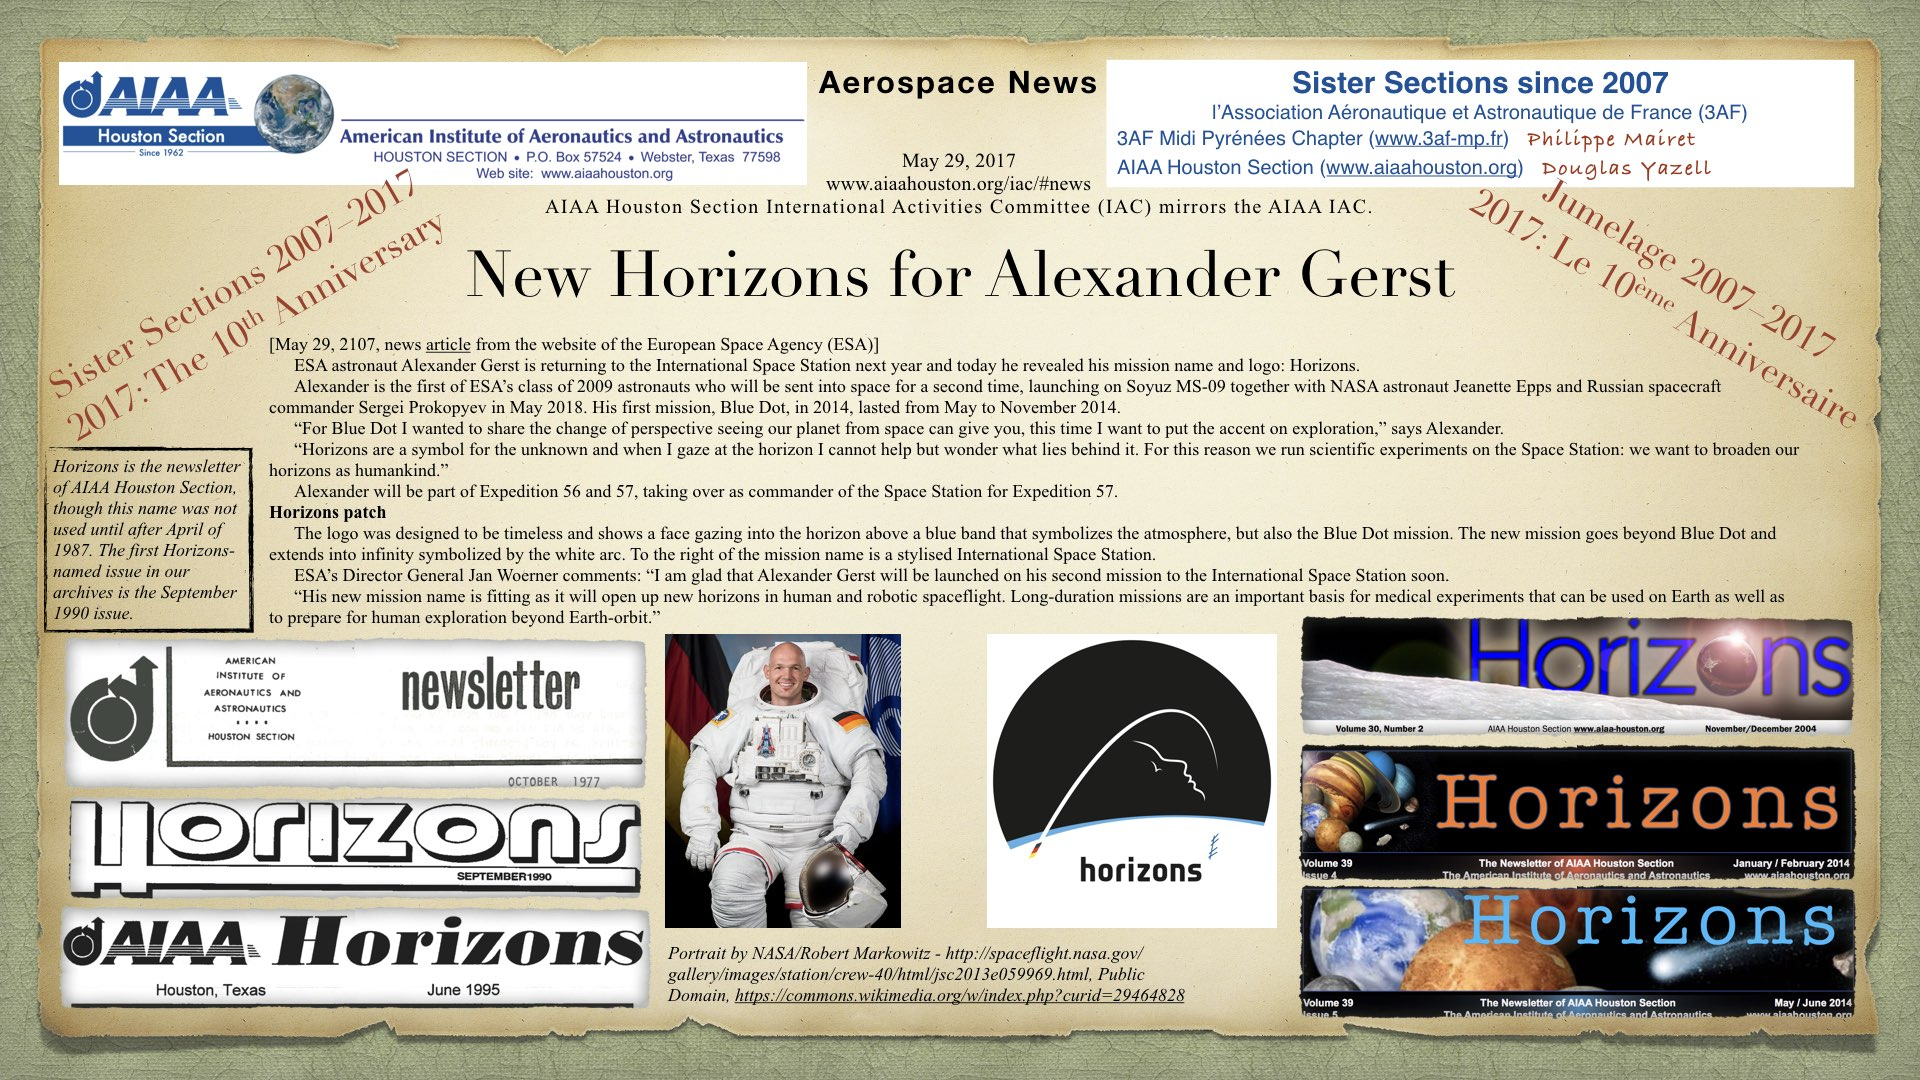 Above: New Horizons for Alexander Gert. (Click to zoom.)